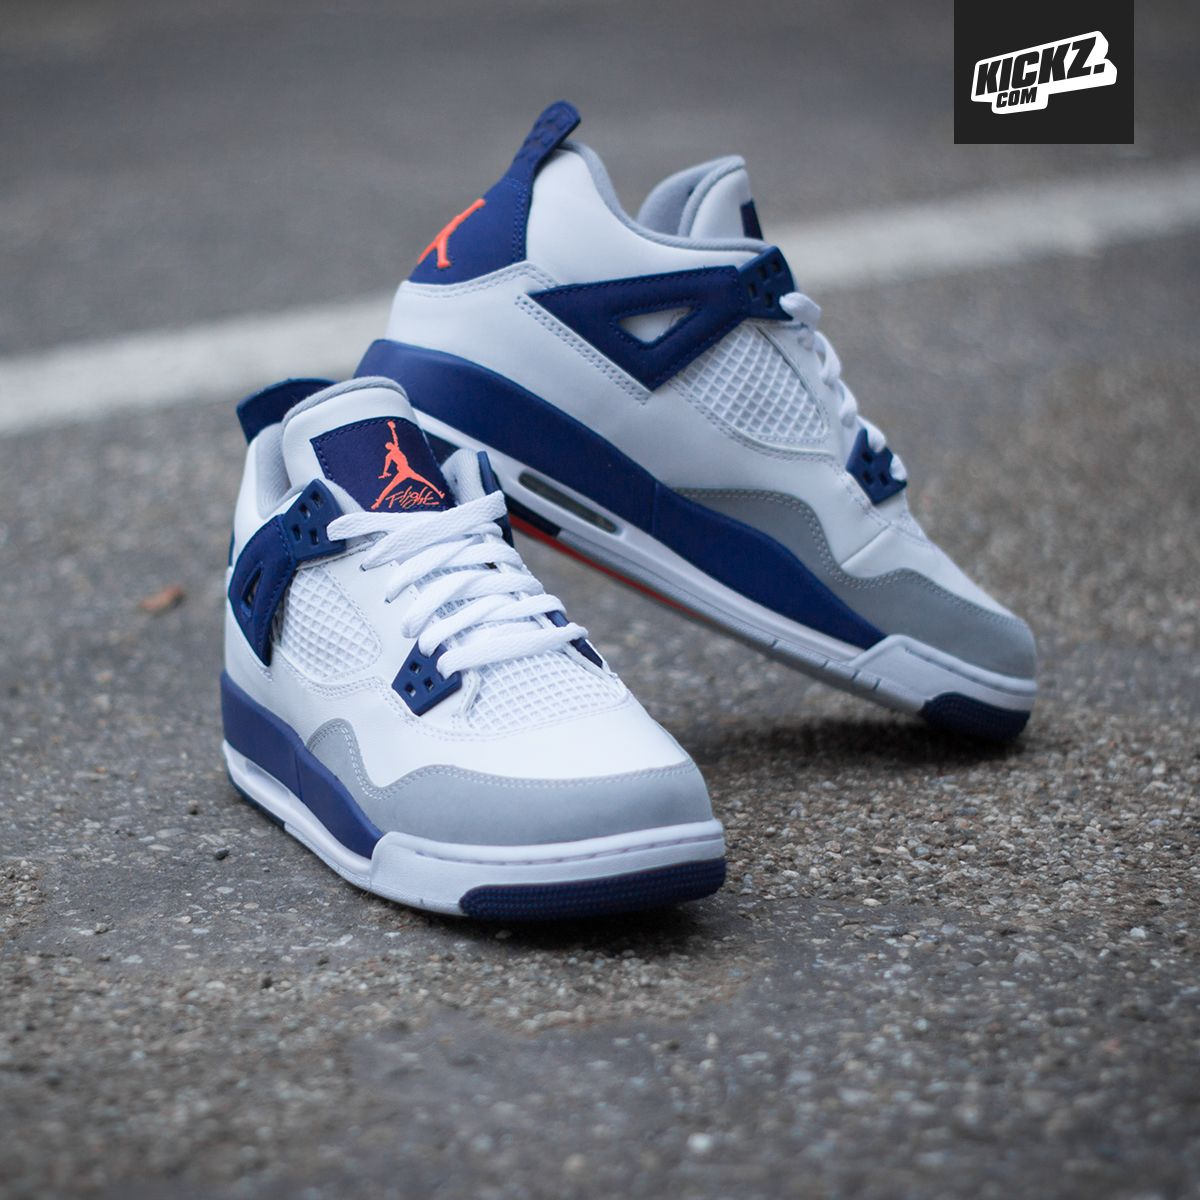 8c1700a395dd  hypebeastkids  Air Jordan 4 Retro GG White Hyper Orange-Deep Royal  Blue-Wolf Grey